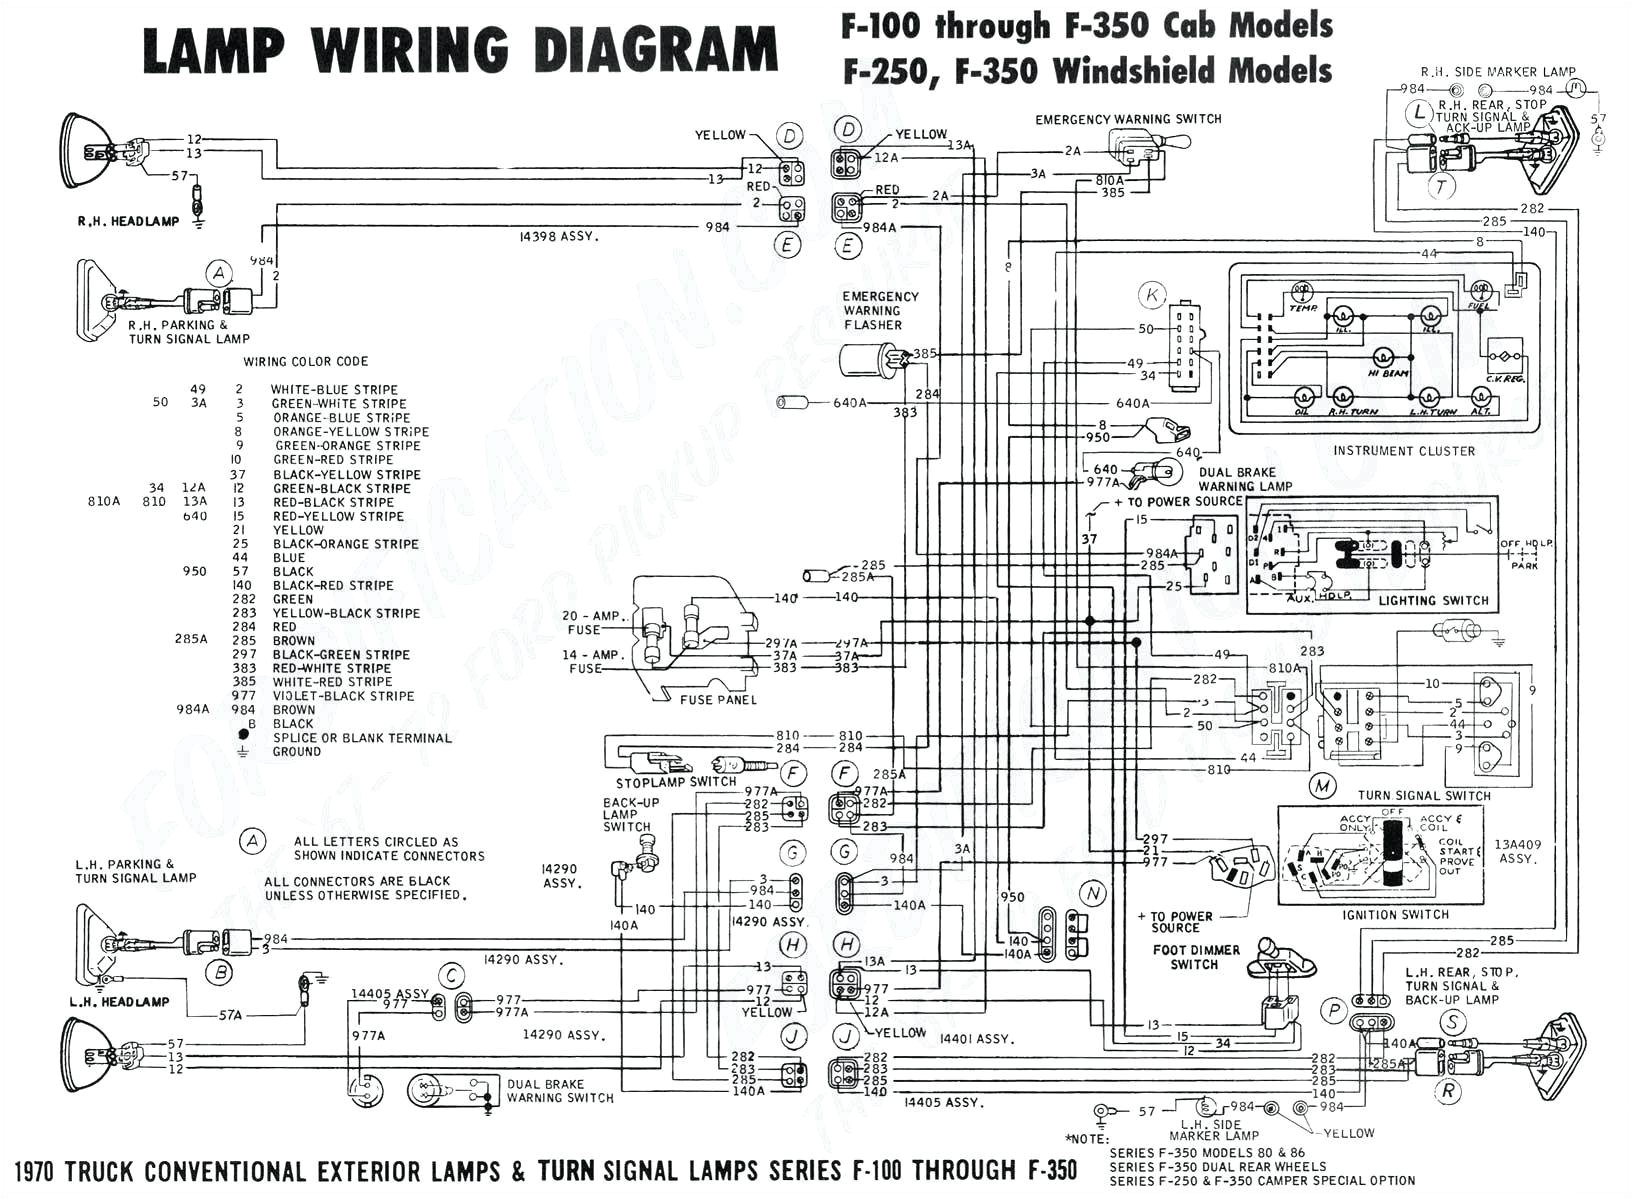 ohm wiring diagram symbol wiring diagram expert ohm wiring diagram symbol